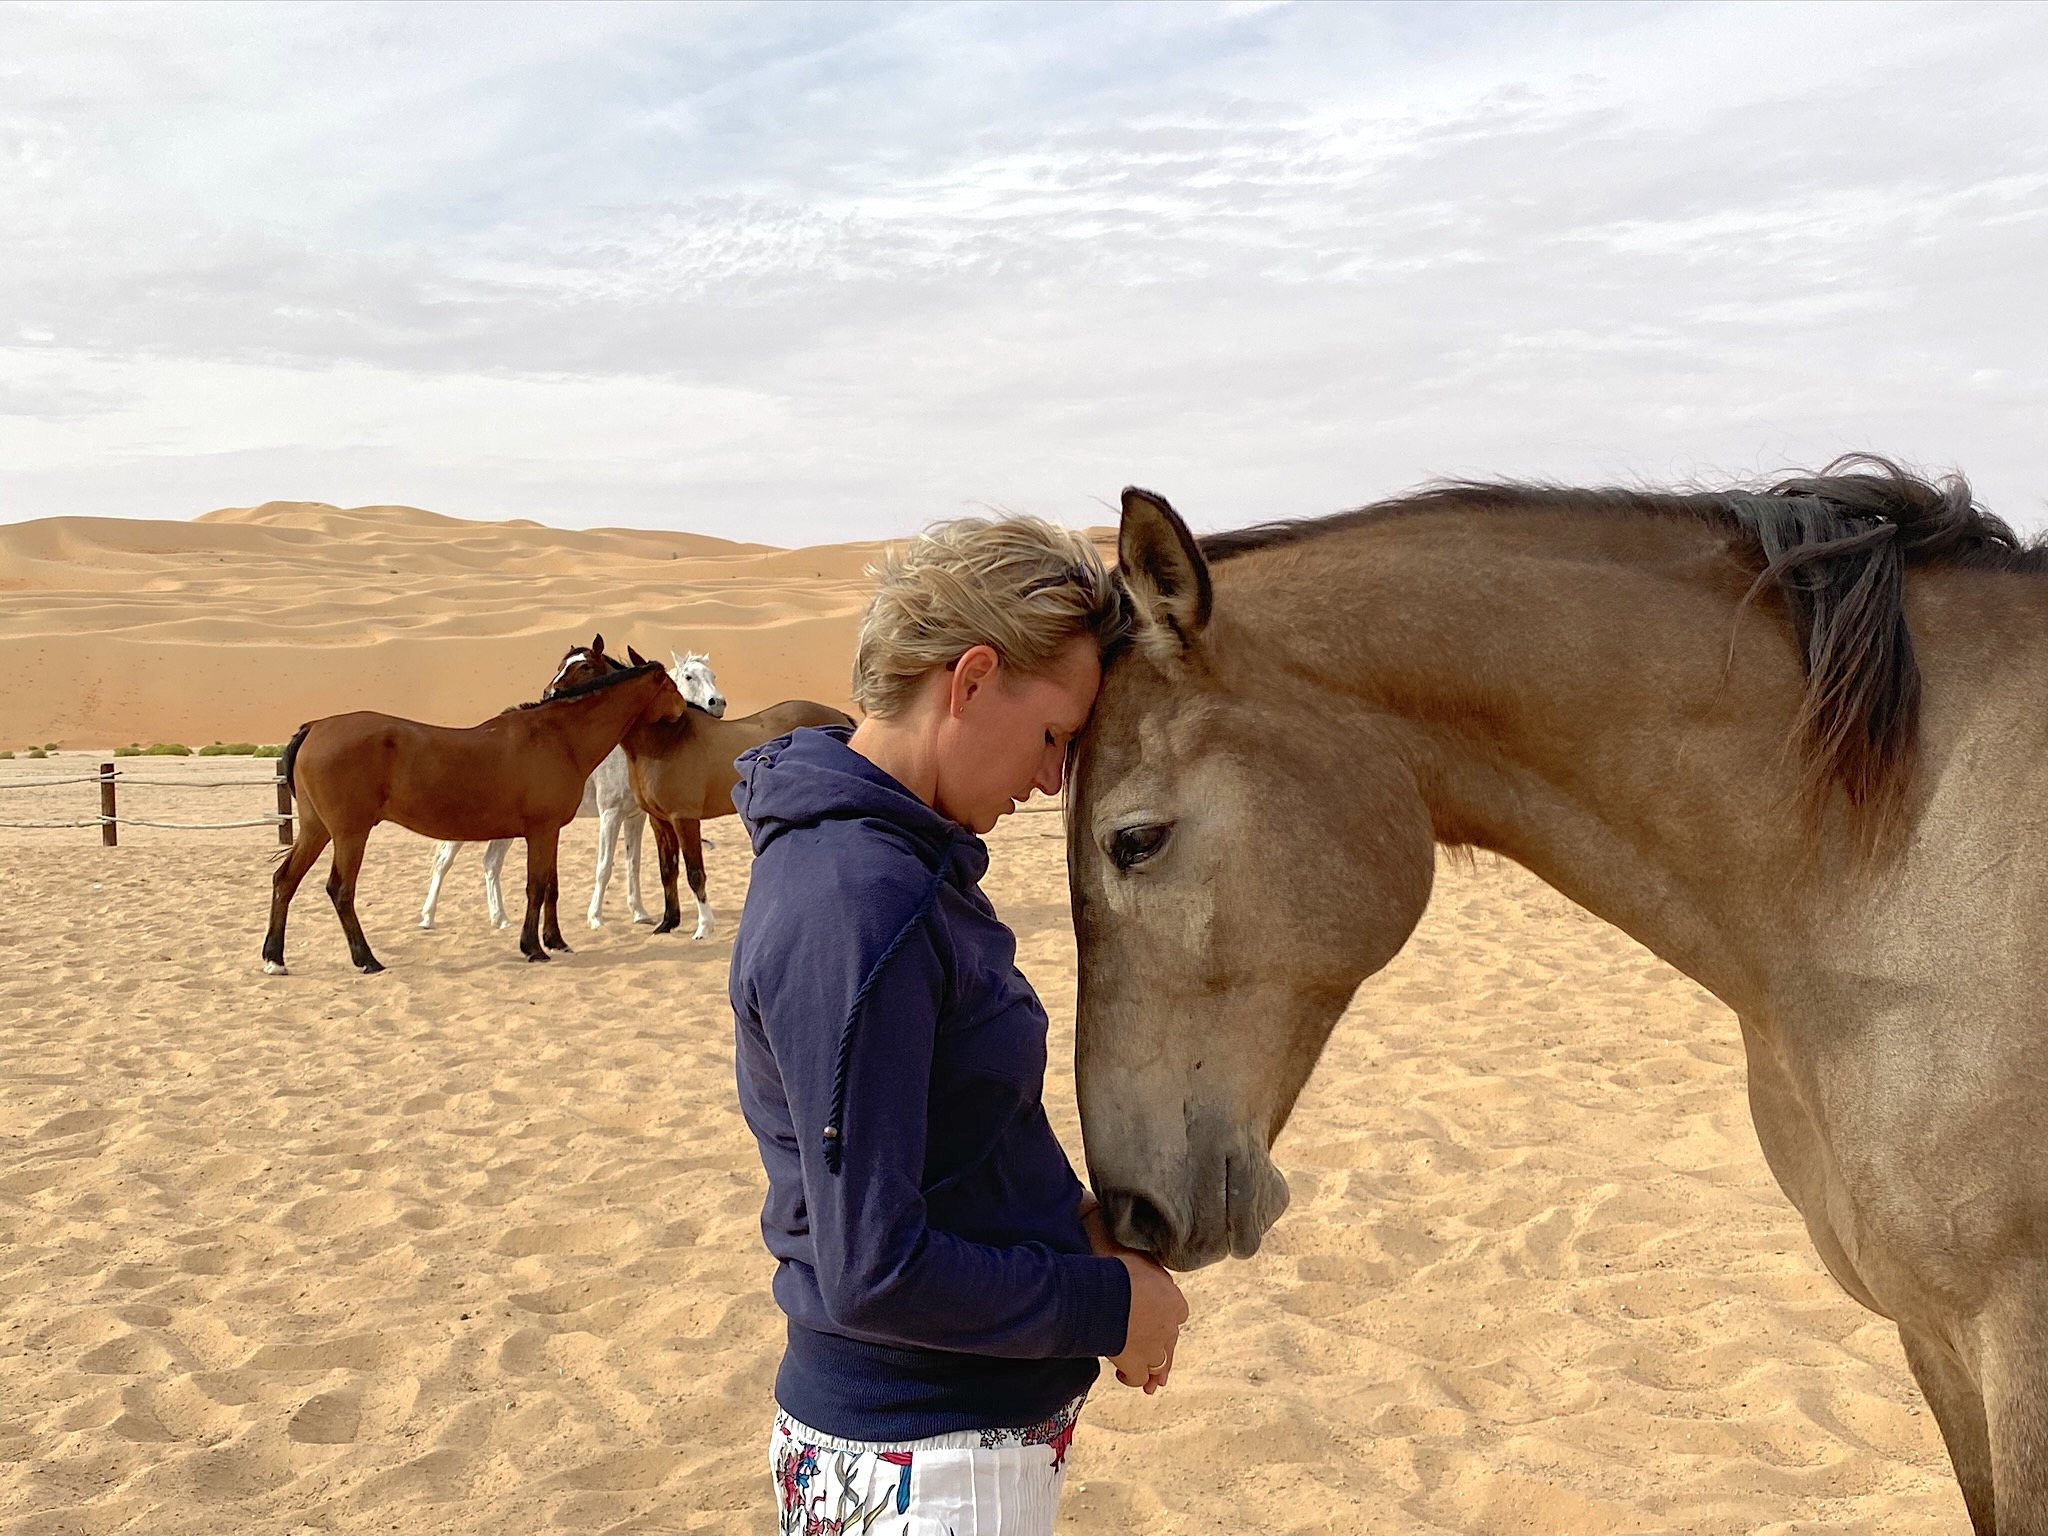 coherence through Horse Guided Empowerment, mind body soul, mindfulness, desert, Dubai